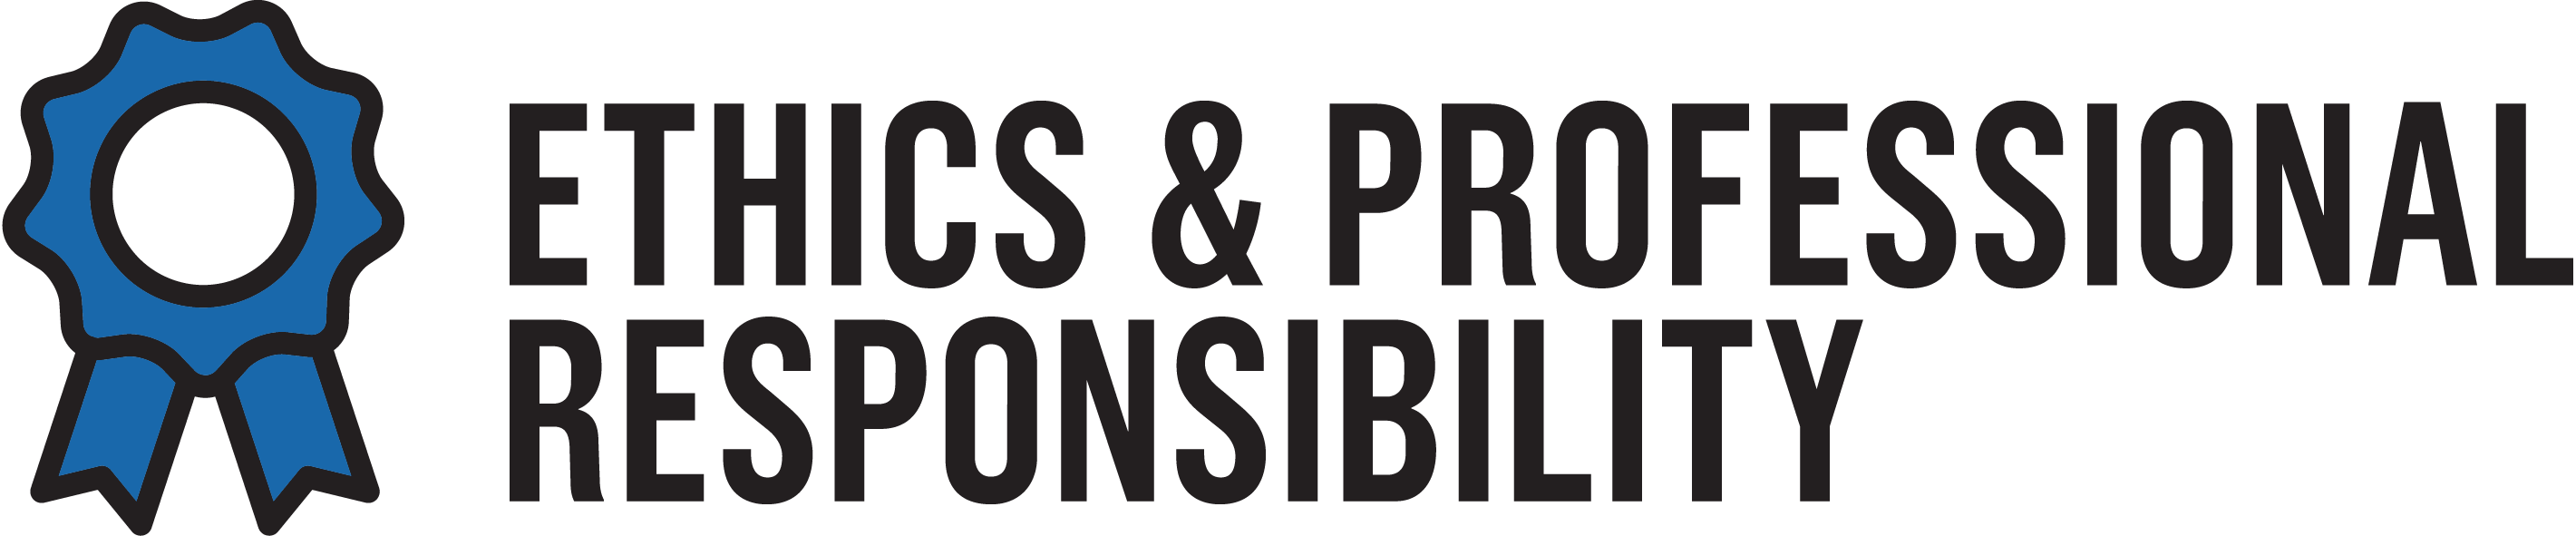 Ethics and professional responsibility